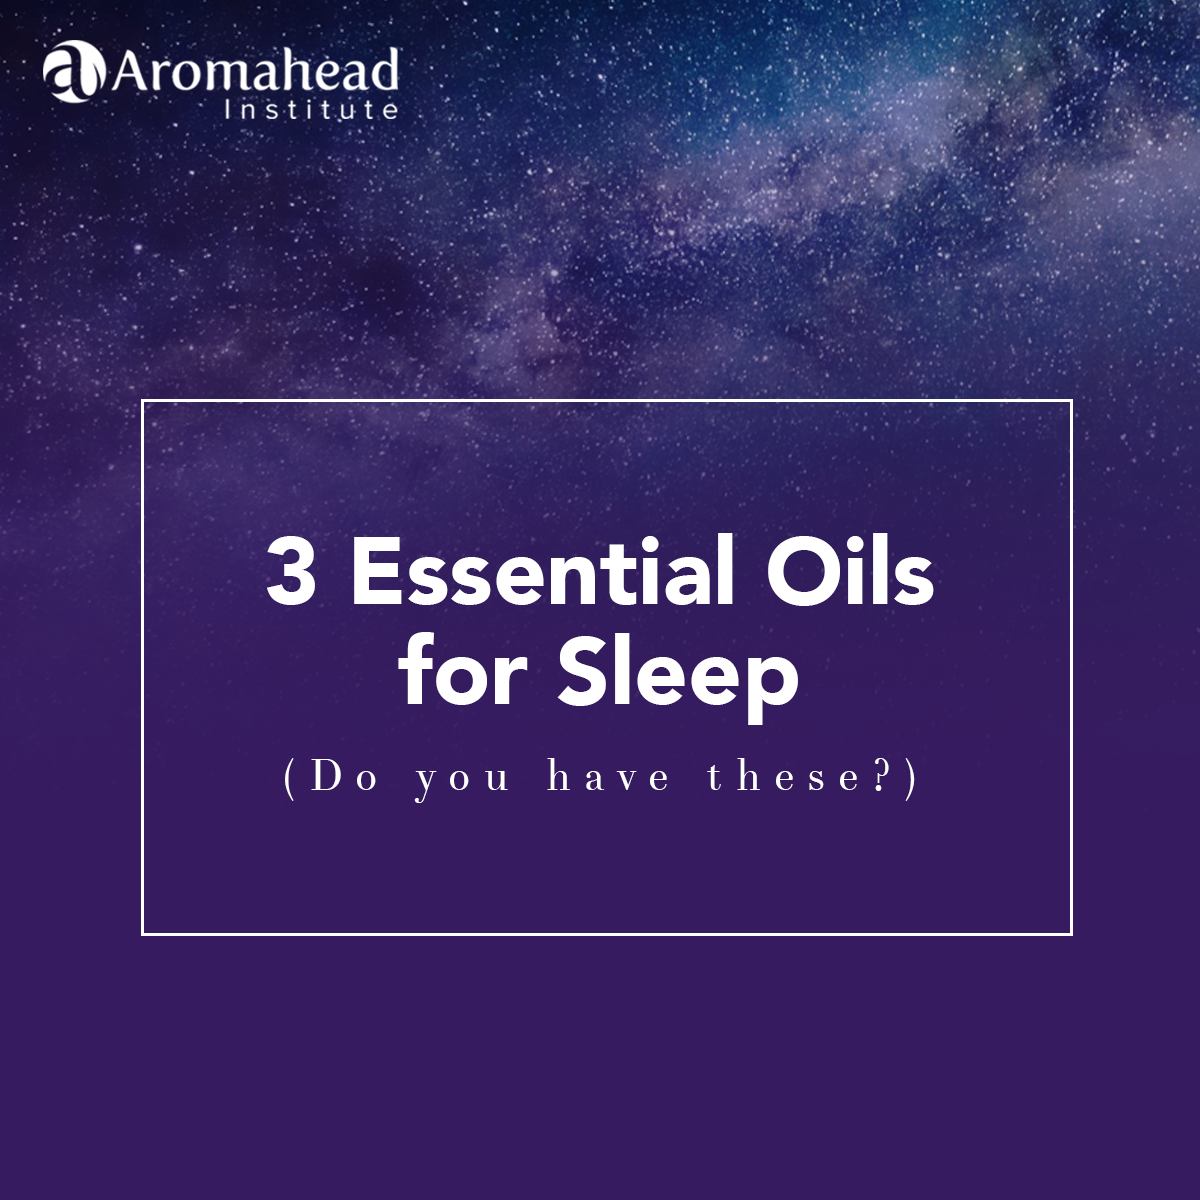 Blog-Sept 10-3 Essential Oils for Sleep - Title- 1200 x 1200